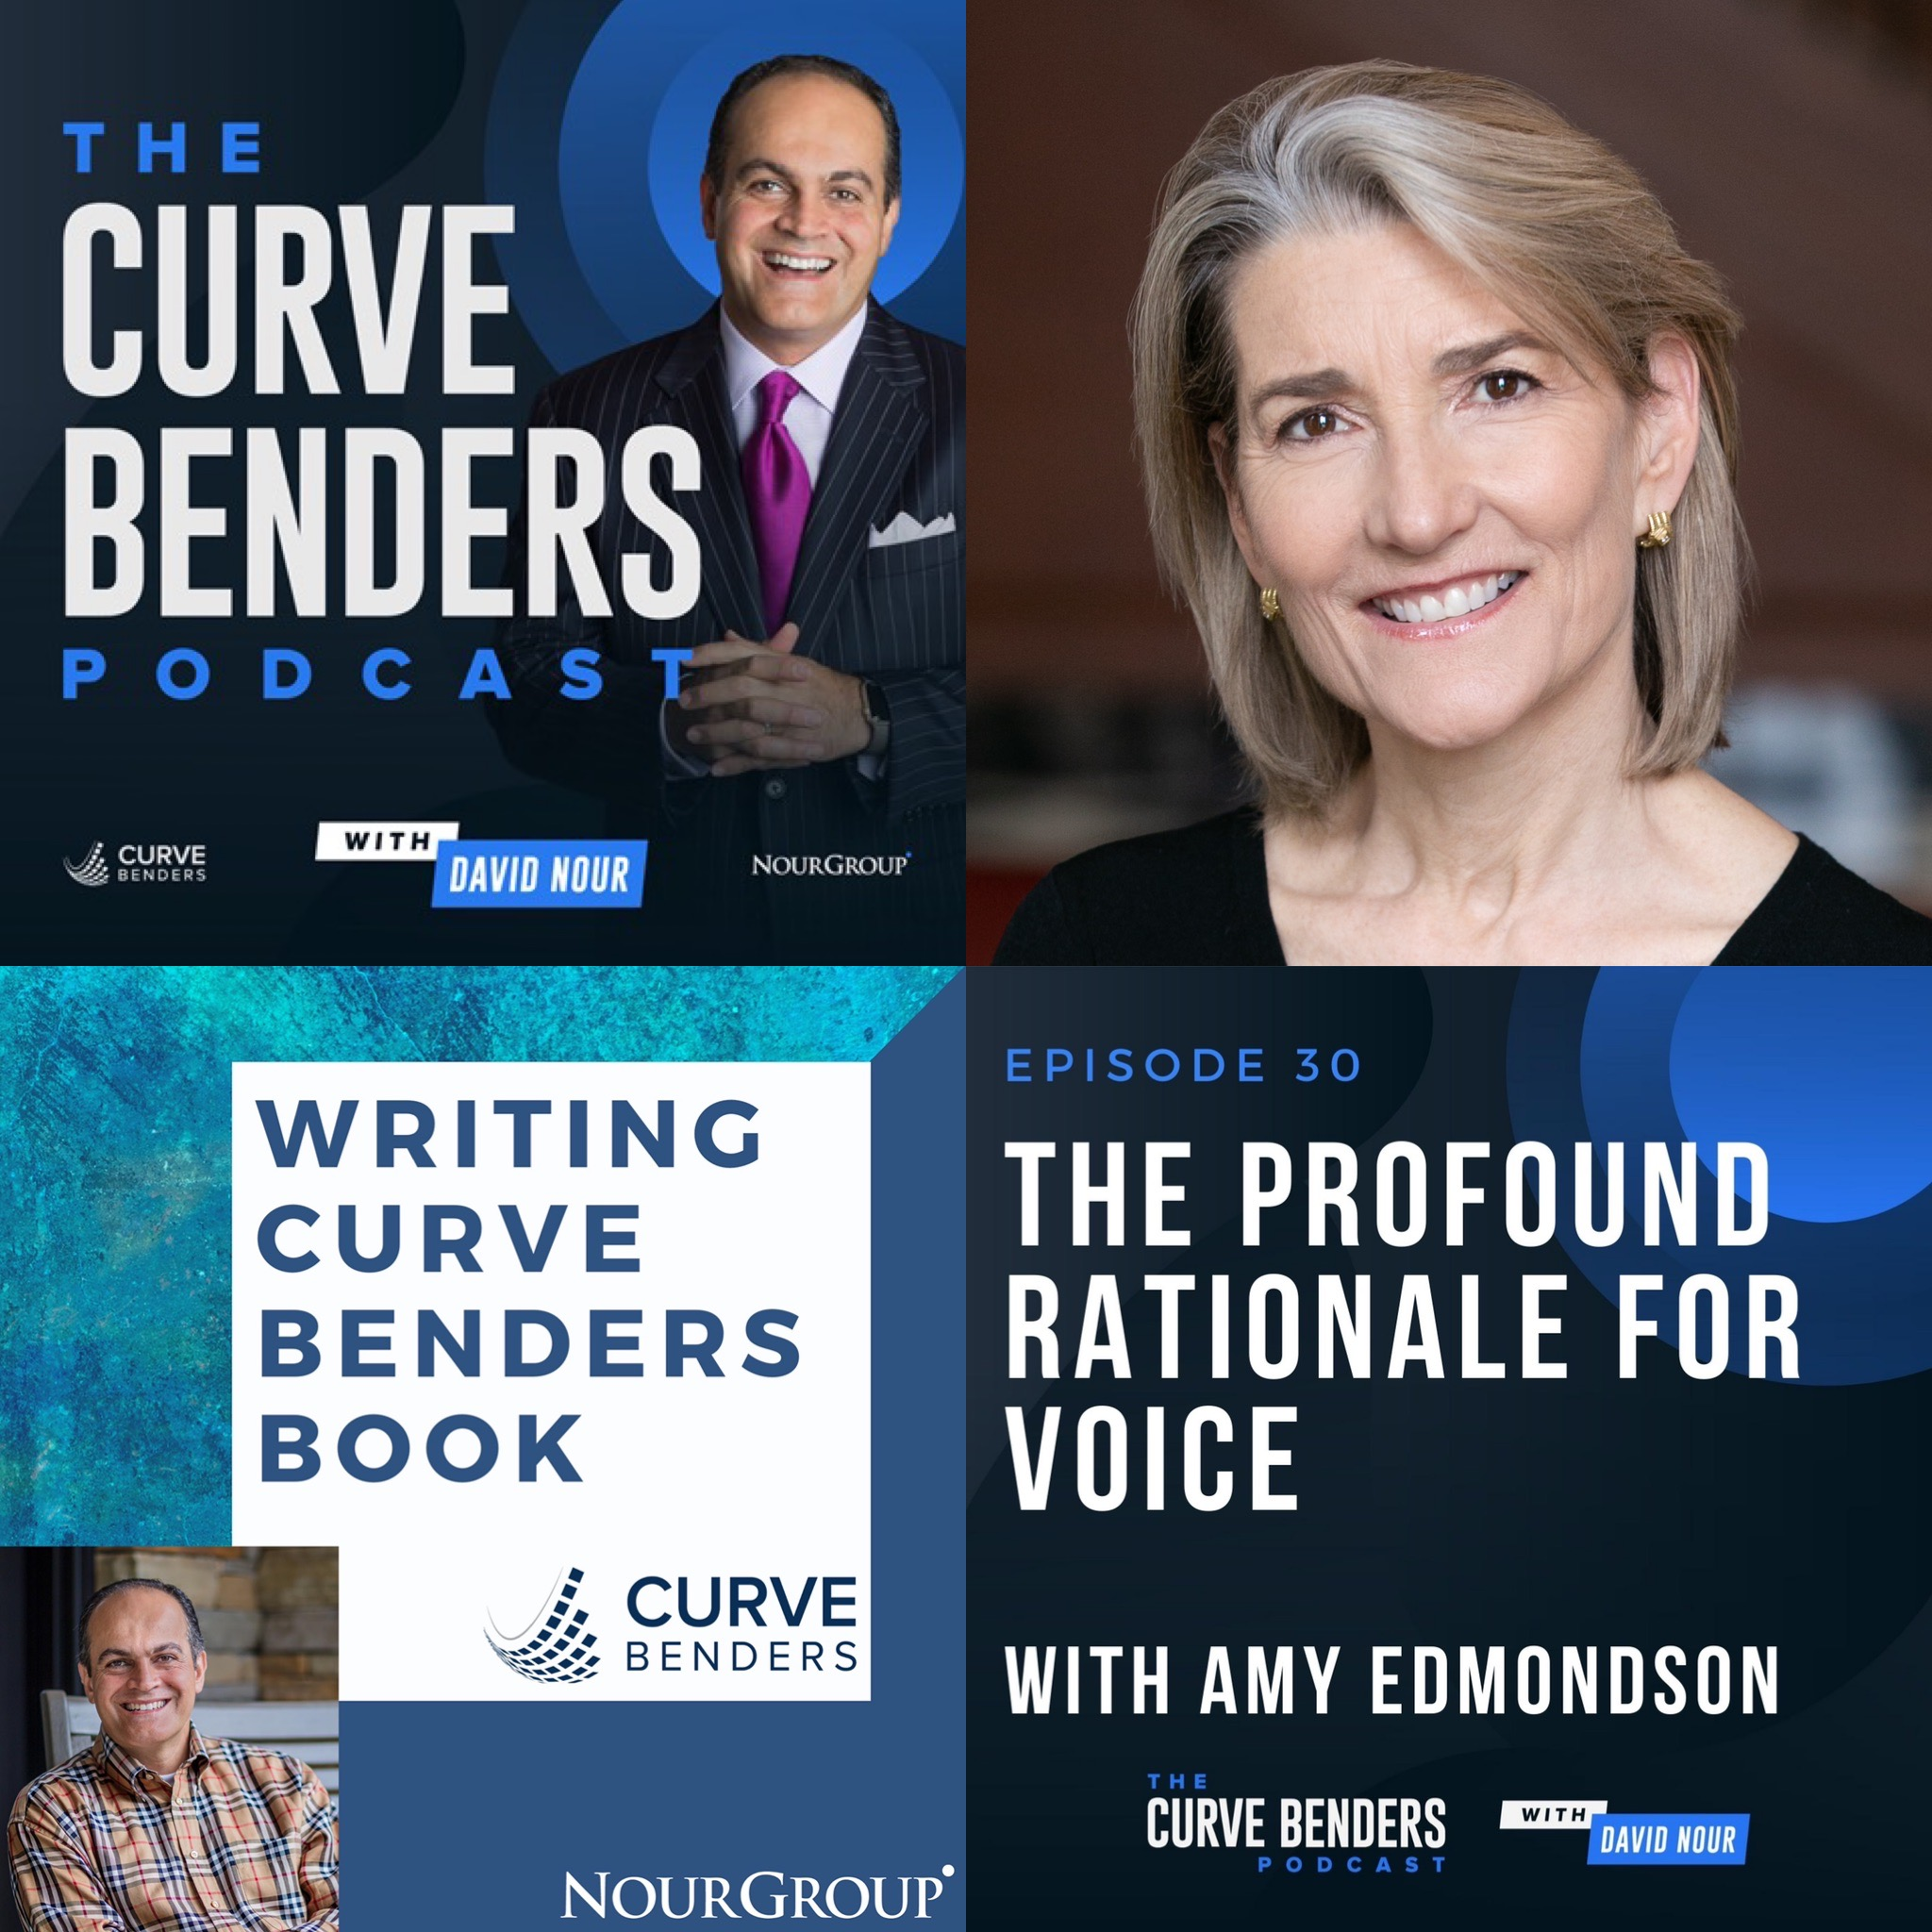 Curve Benders Podcast – The Profound Rationale for Voice with Amy Edmondson